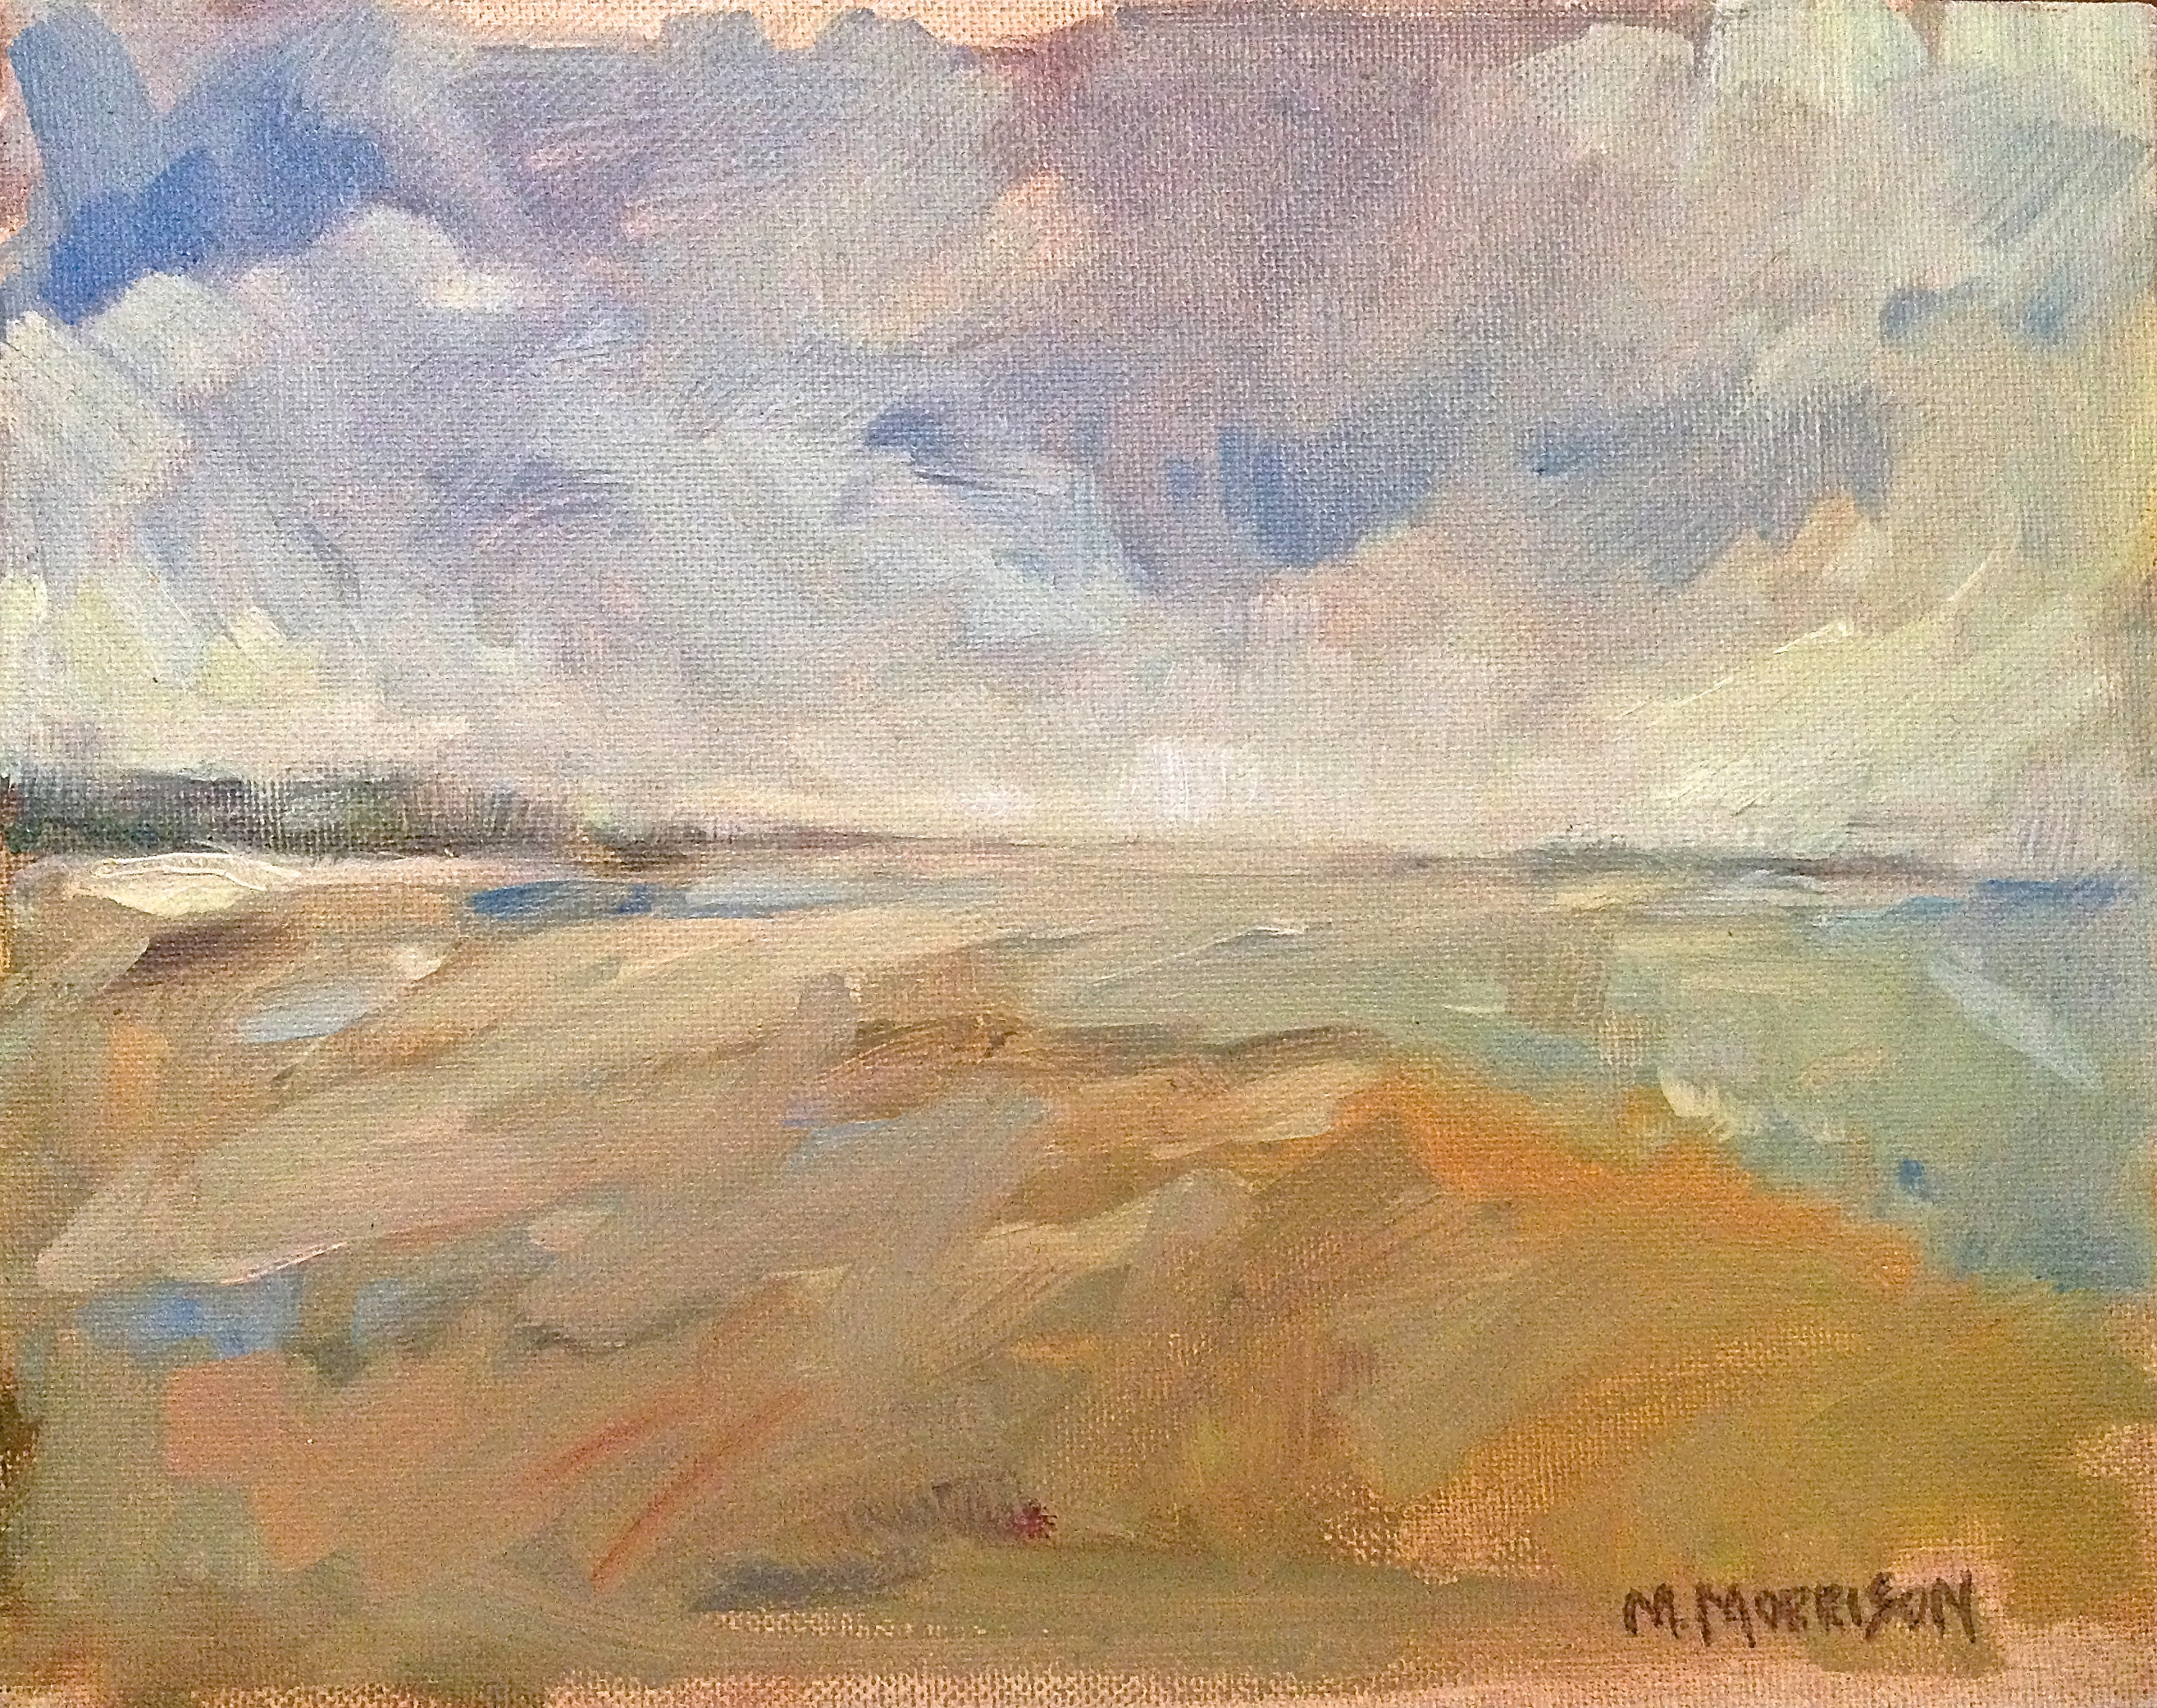 Waning Tide - SOLD